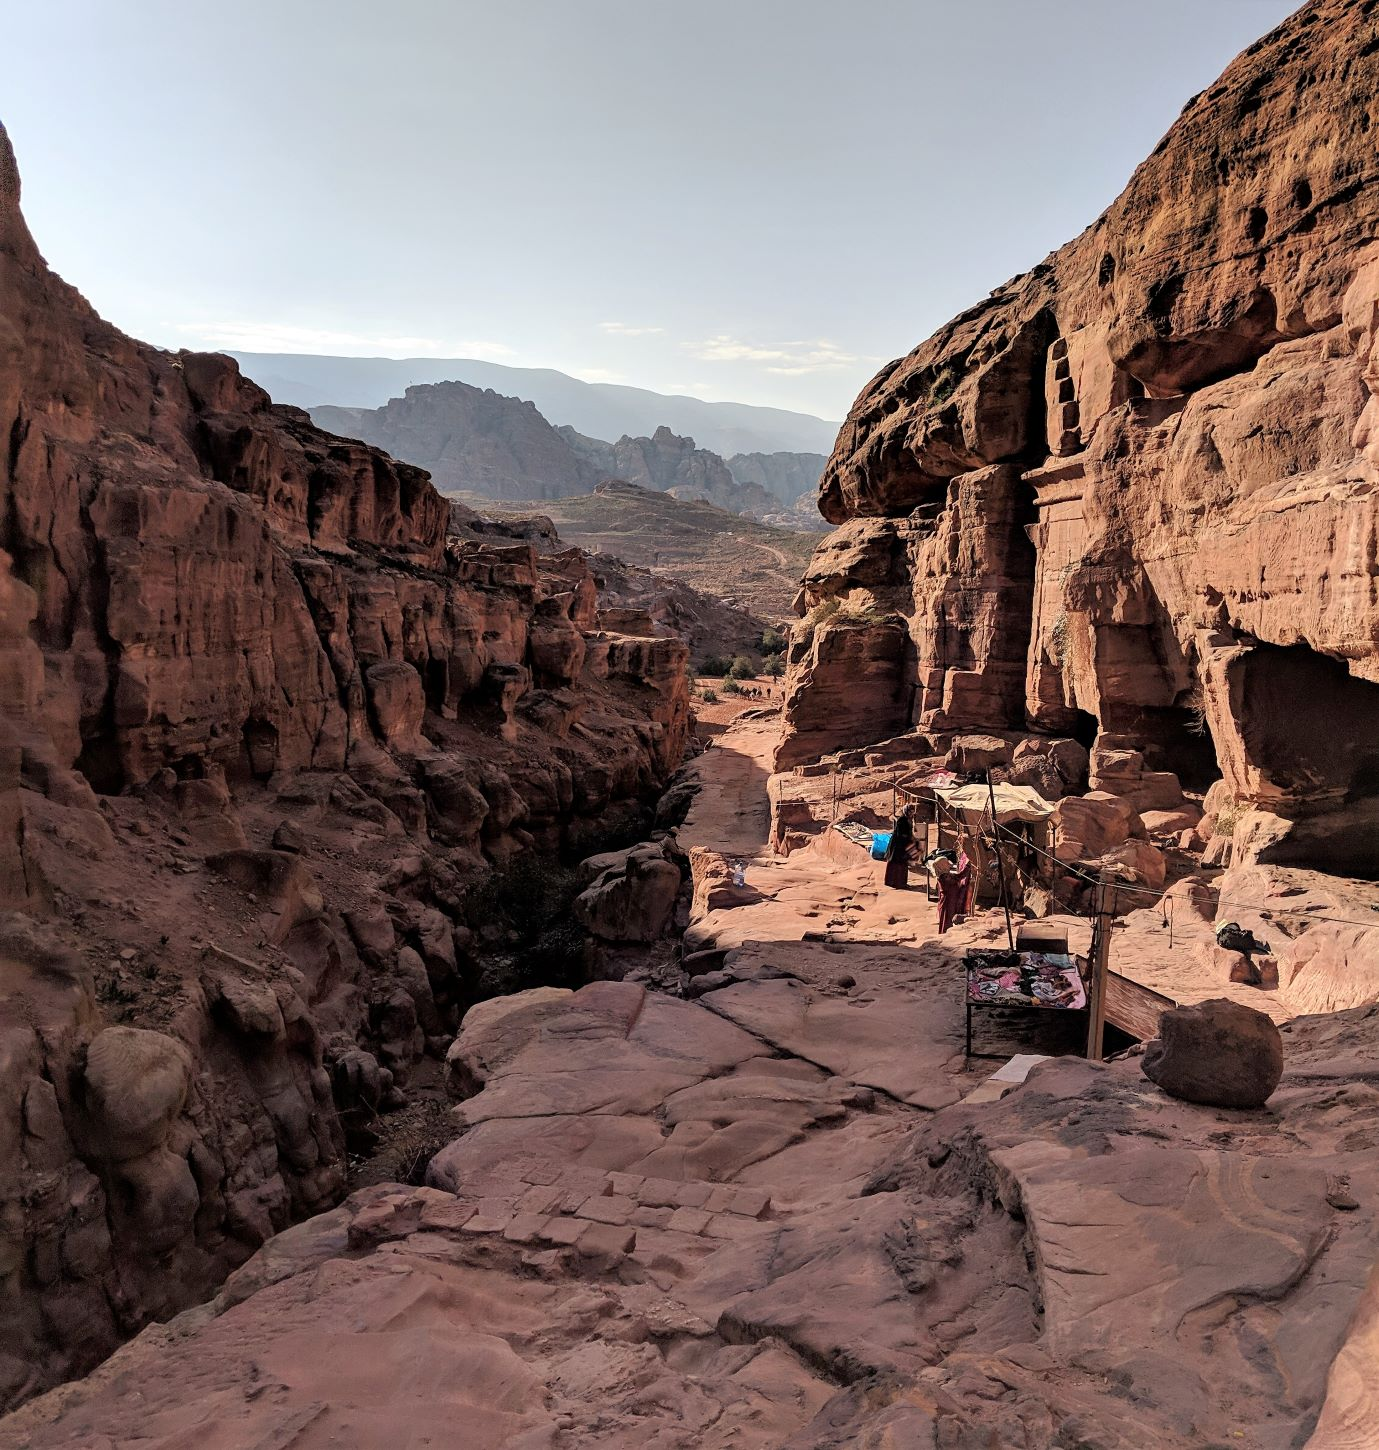 This was the terrain we encountered while hiking to the Al Deir Monastery.